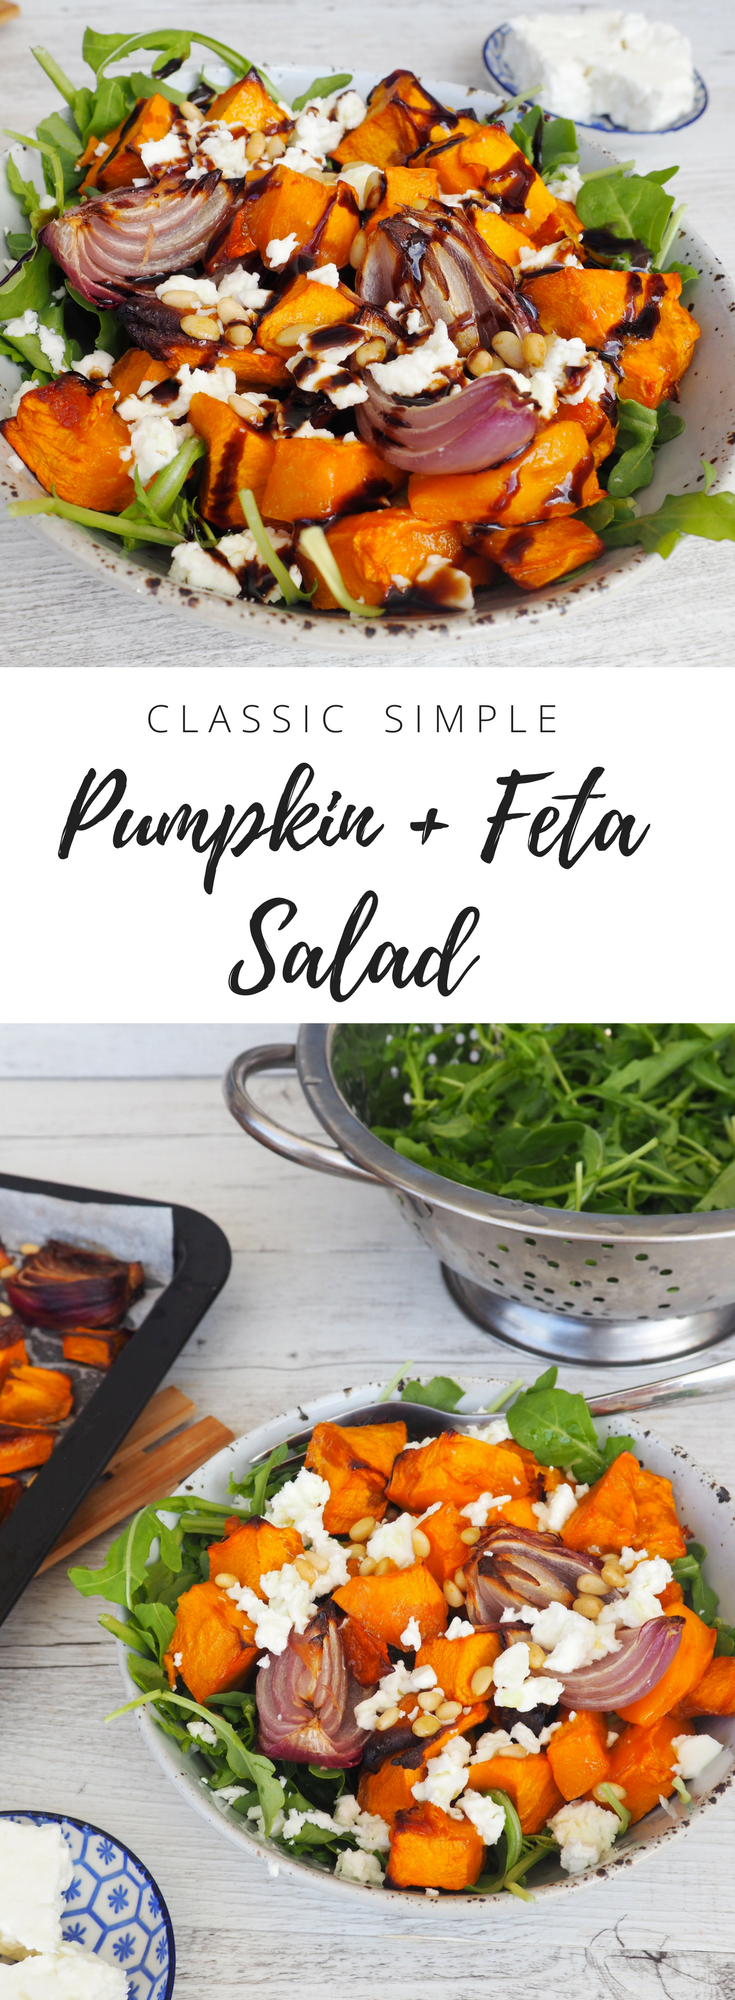 Classic Pumpkin and Feta salad recipe by Lyndi Cohen